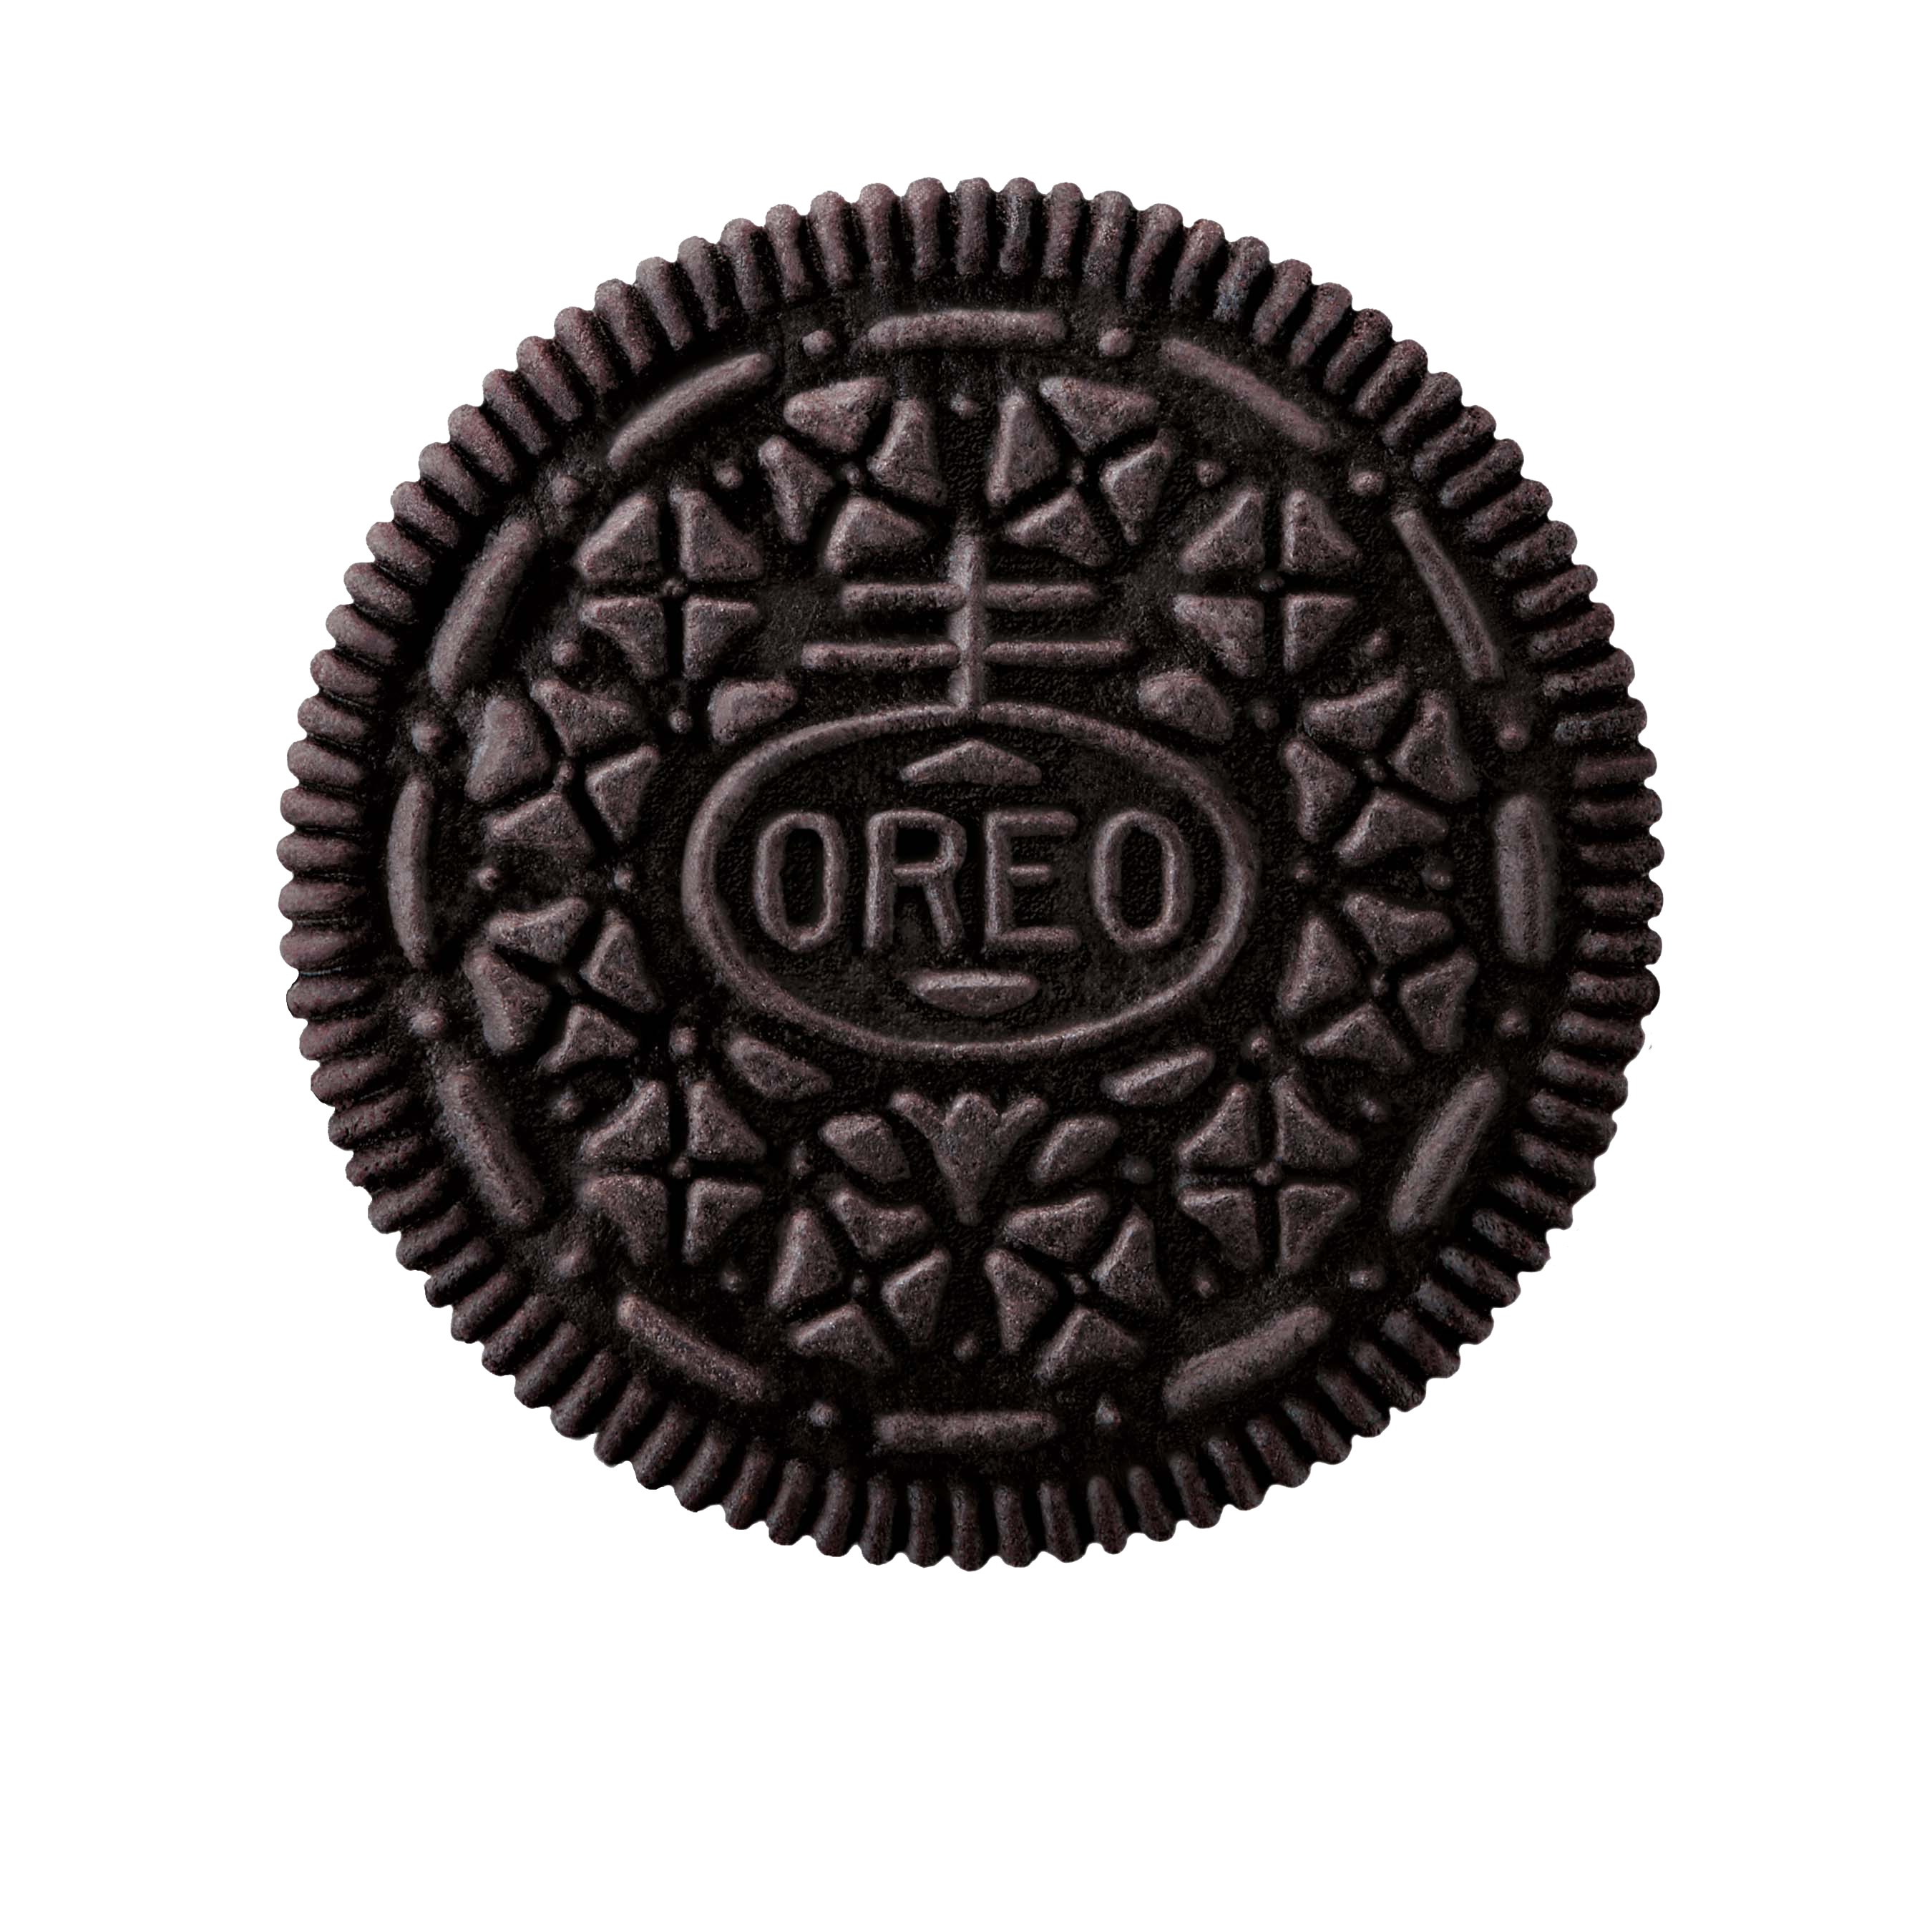 Download Stuffing Oreo Sticker Brownie Chocolate Cookie.